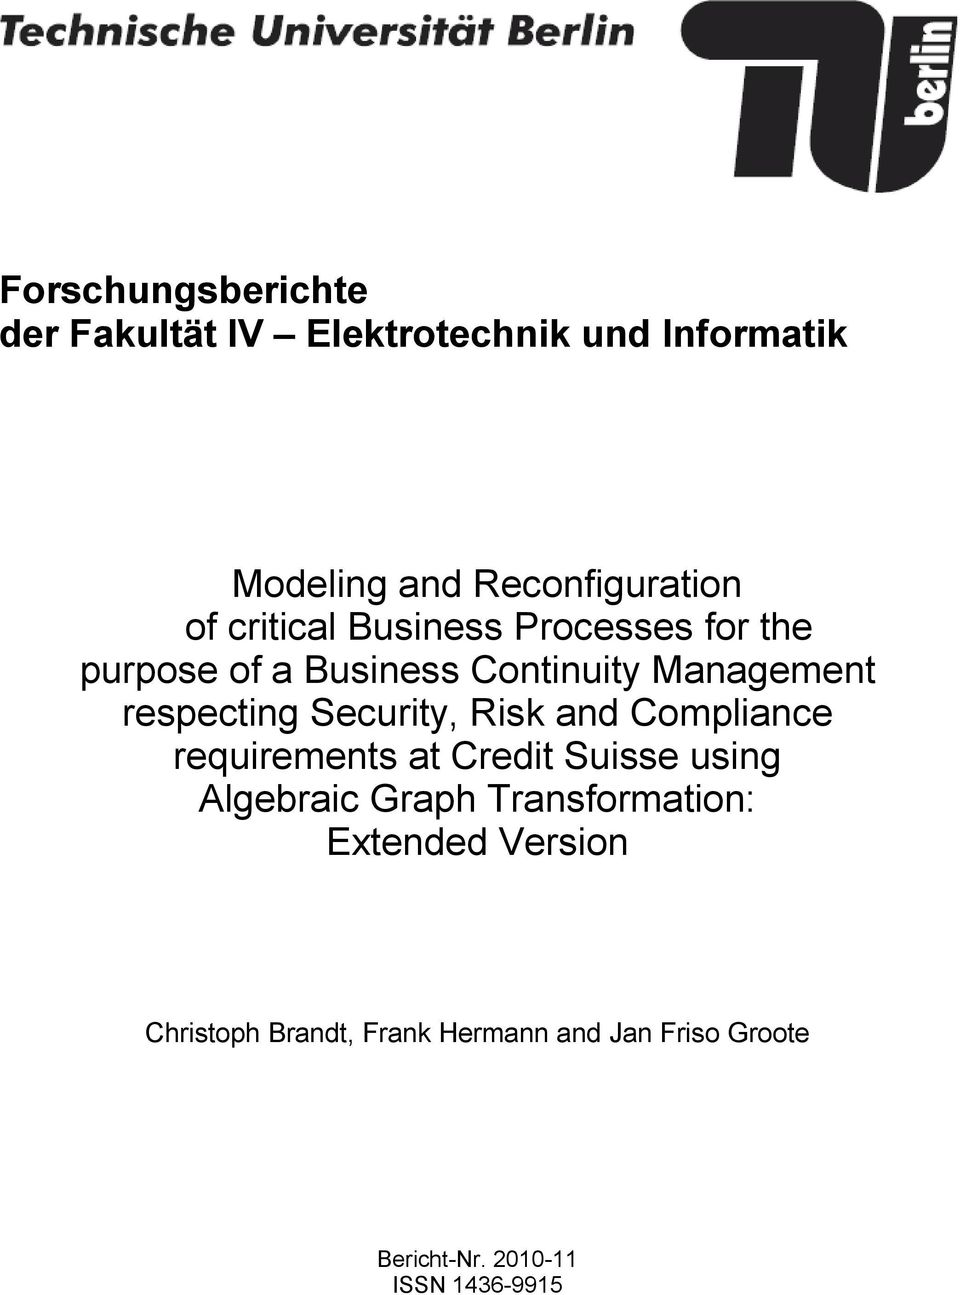 Security, Risk and Compliance requirements at Credit Suisse using Algebraic Graph Transformation: